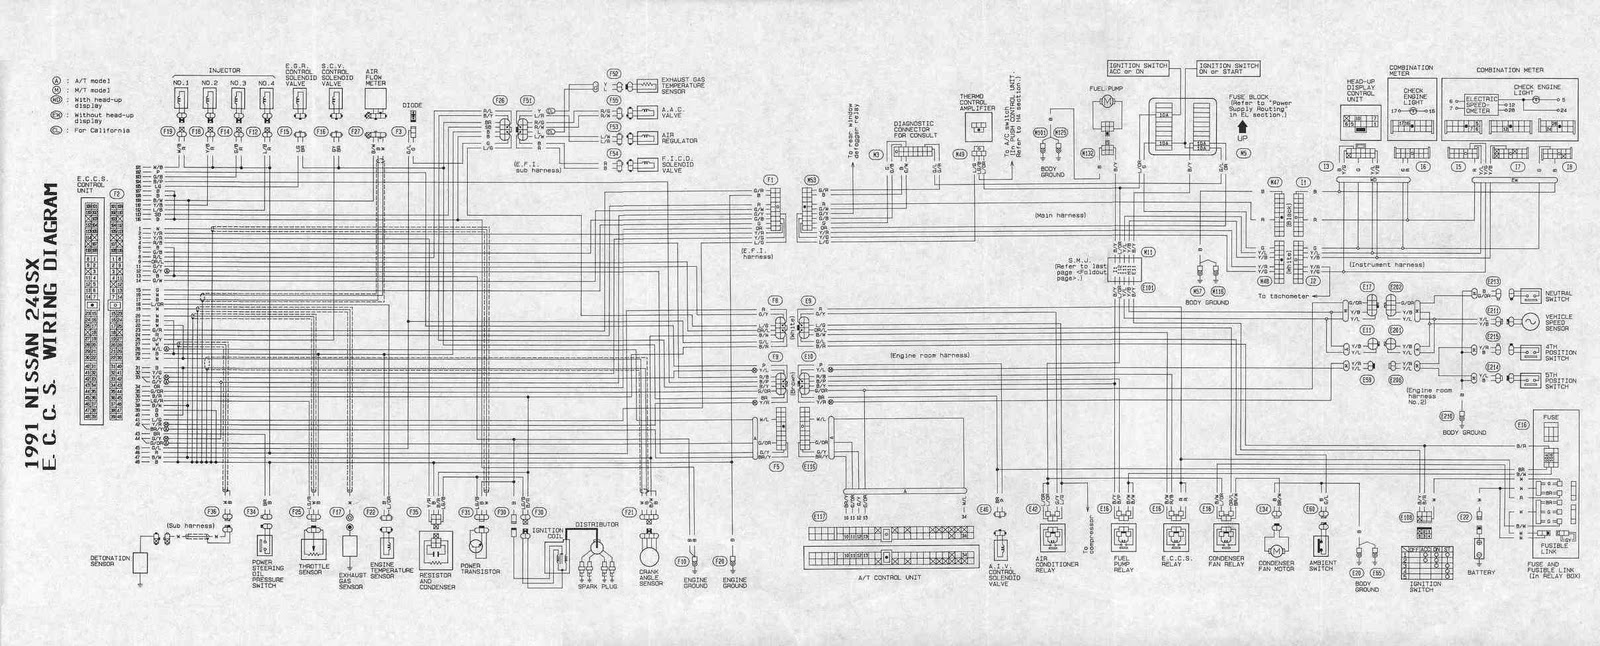 Nissan+240SX+1991+ECCS+Wiring+Diagram 240sx wiring harness diagram 97 nissan 240sx wiring diagram \u2022 free nissan wiring harness diagram at soozxer.org